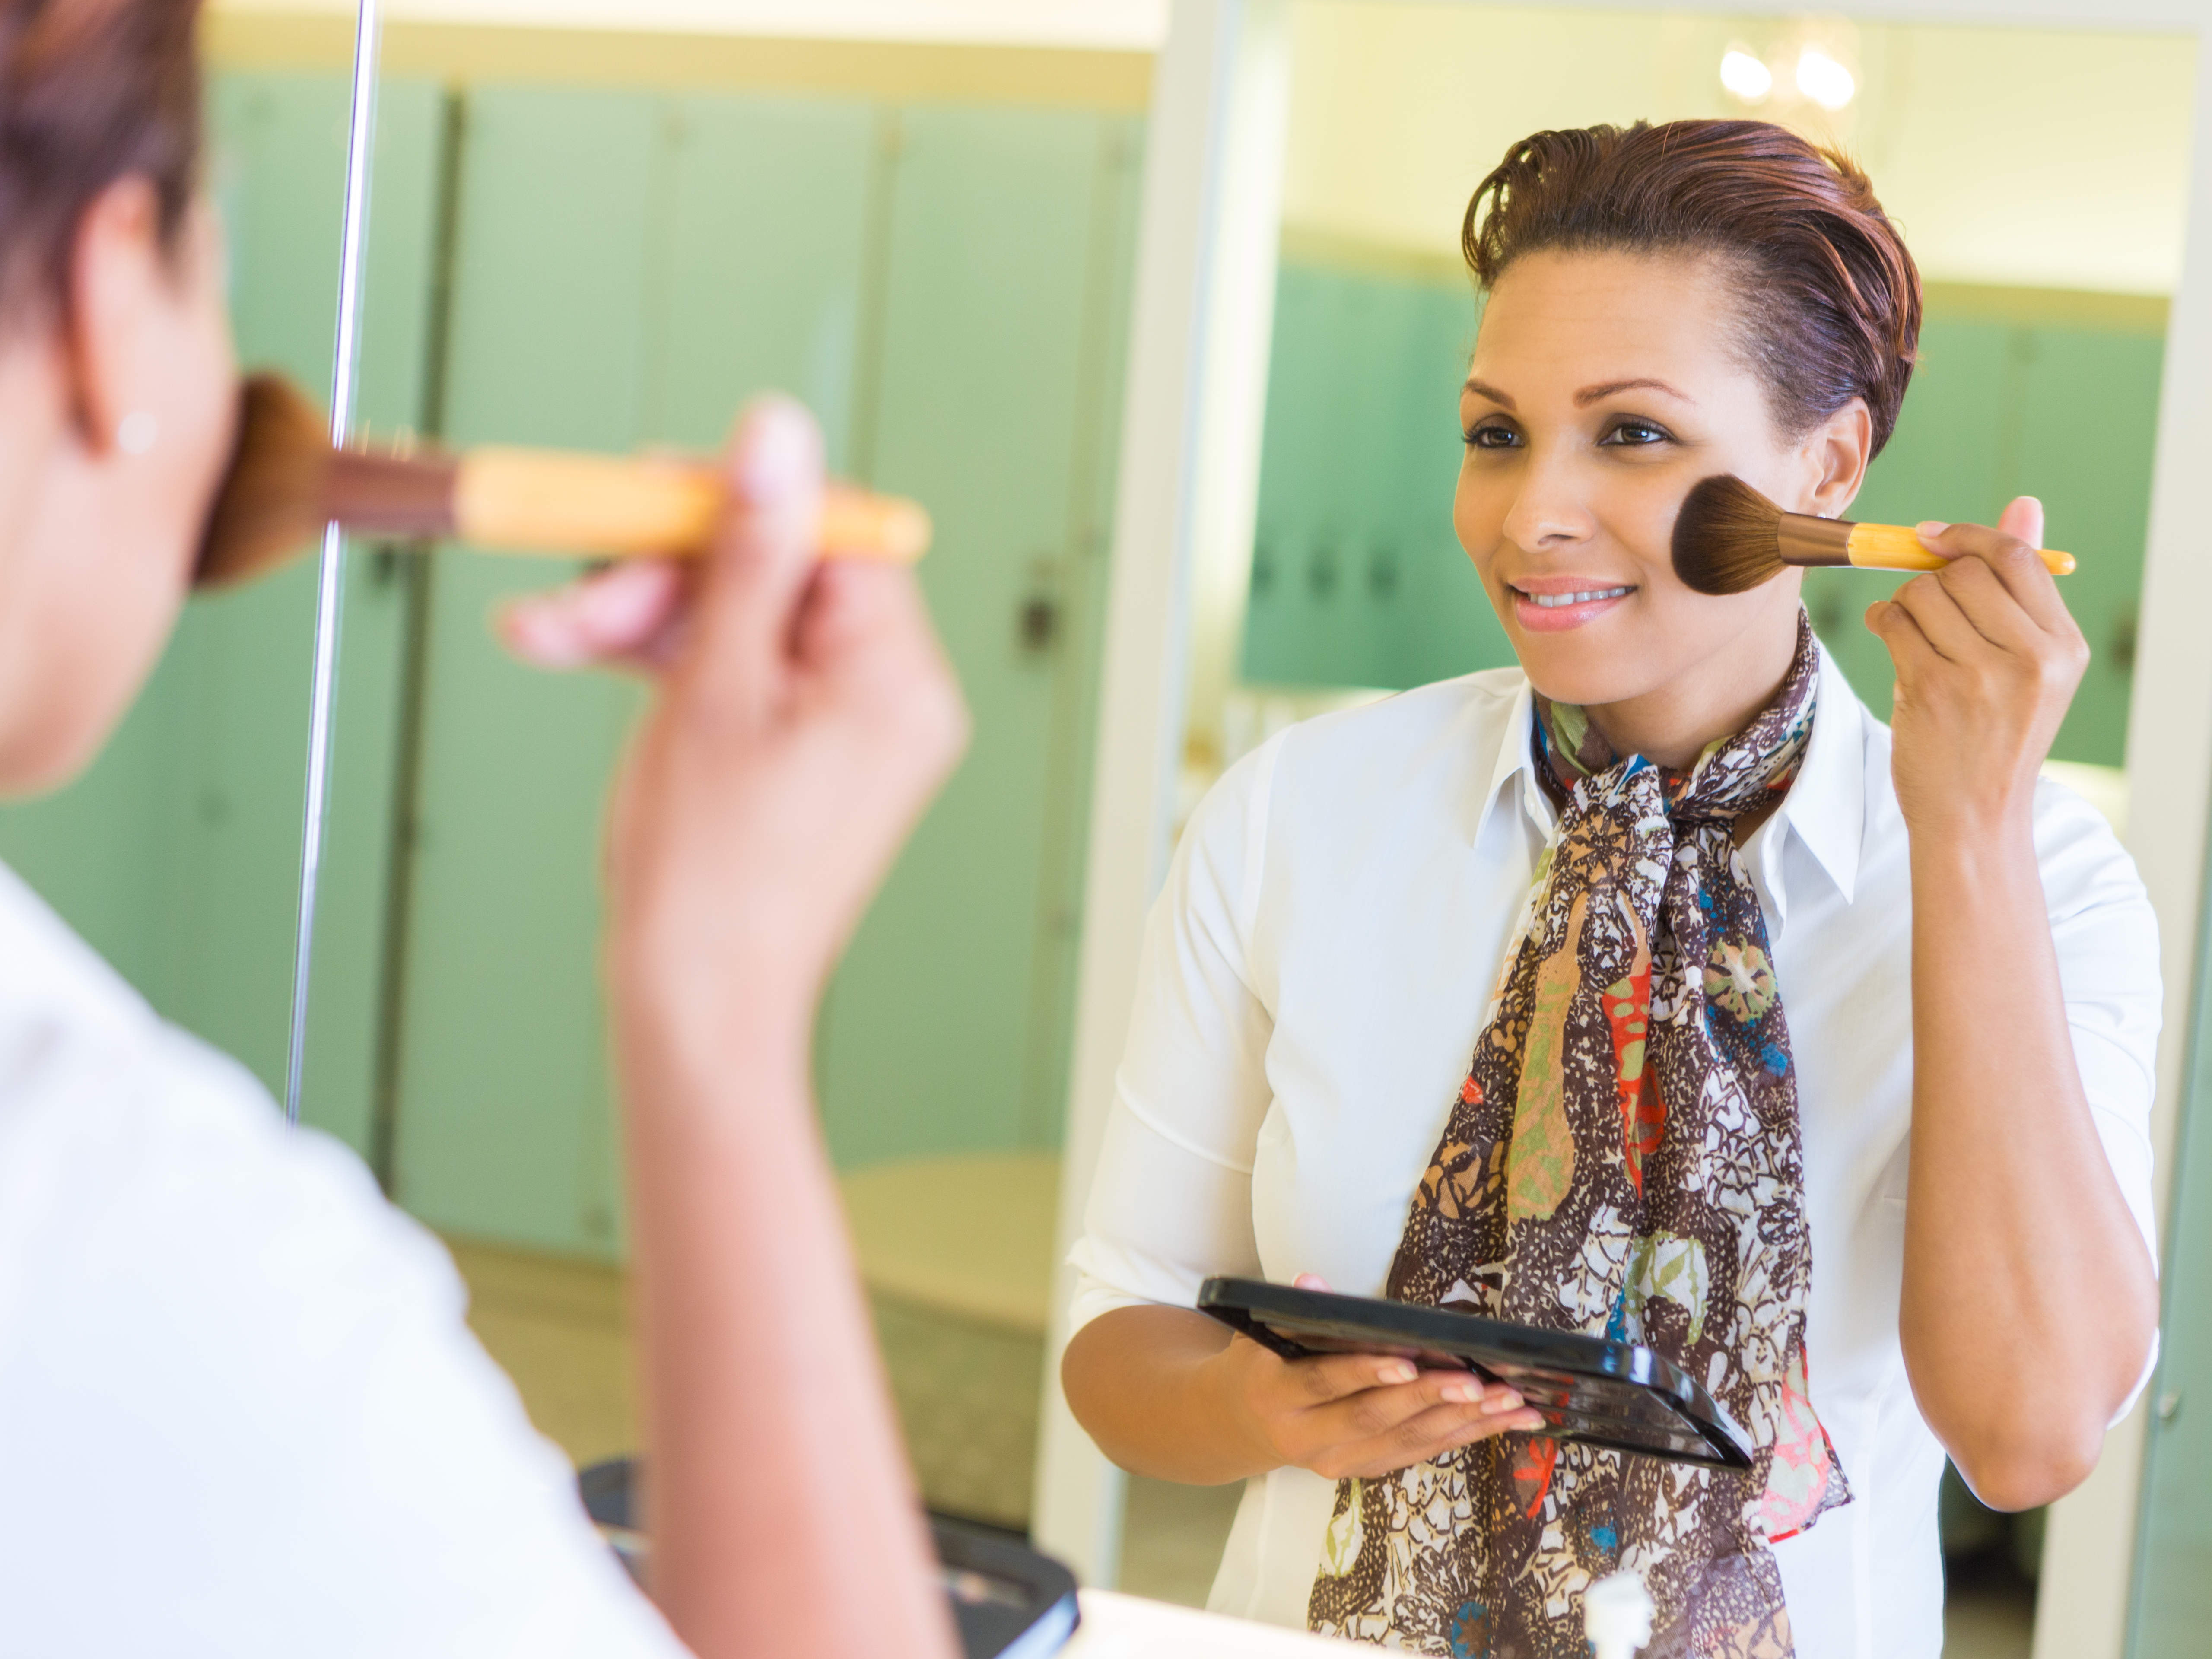 Woman applying makeup in front of a mirror in a gym locker room